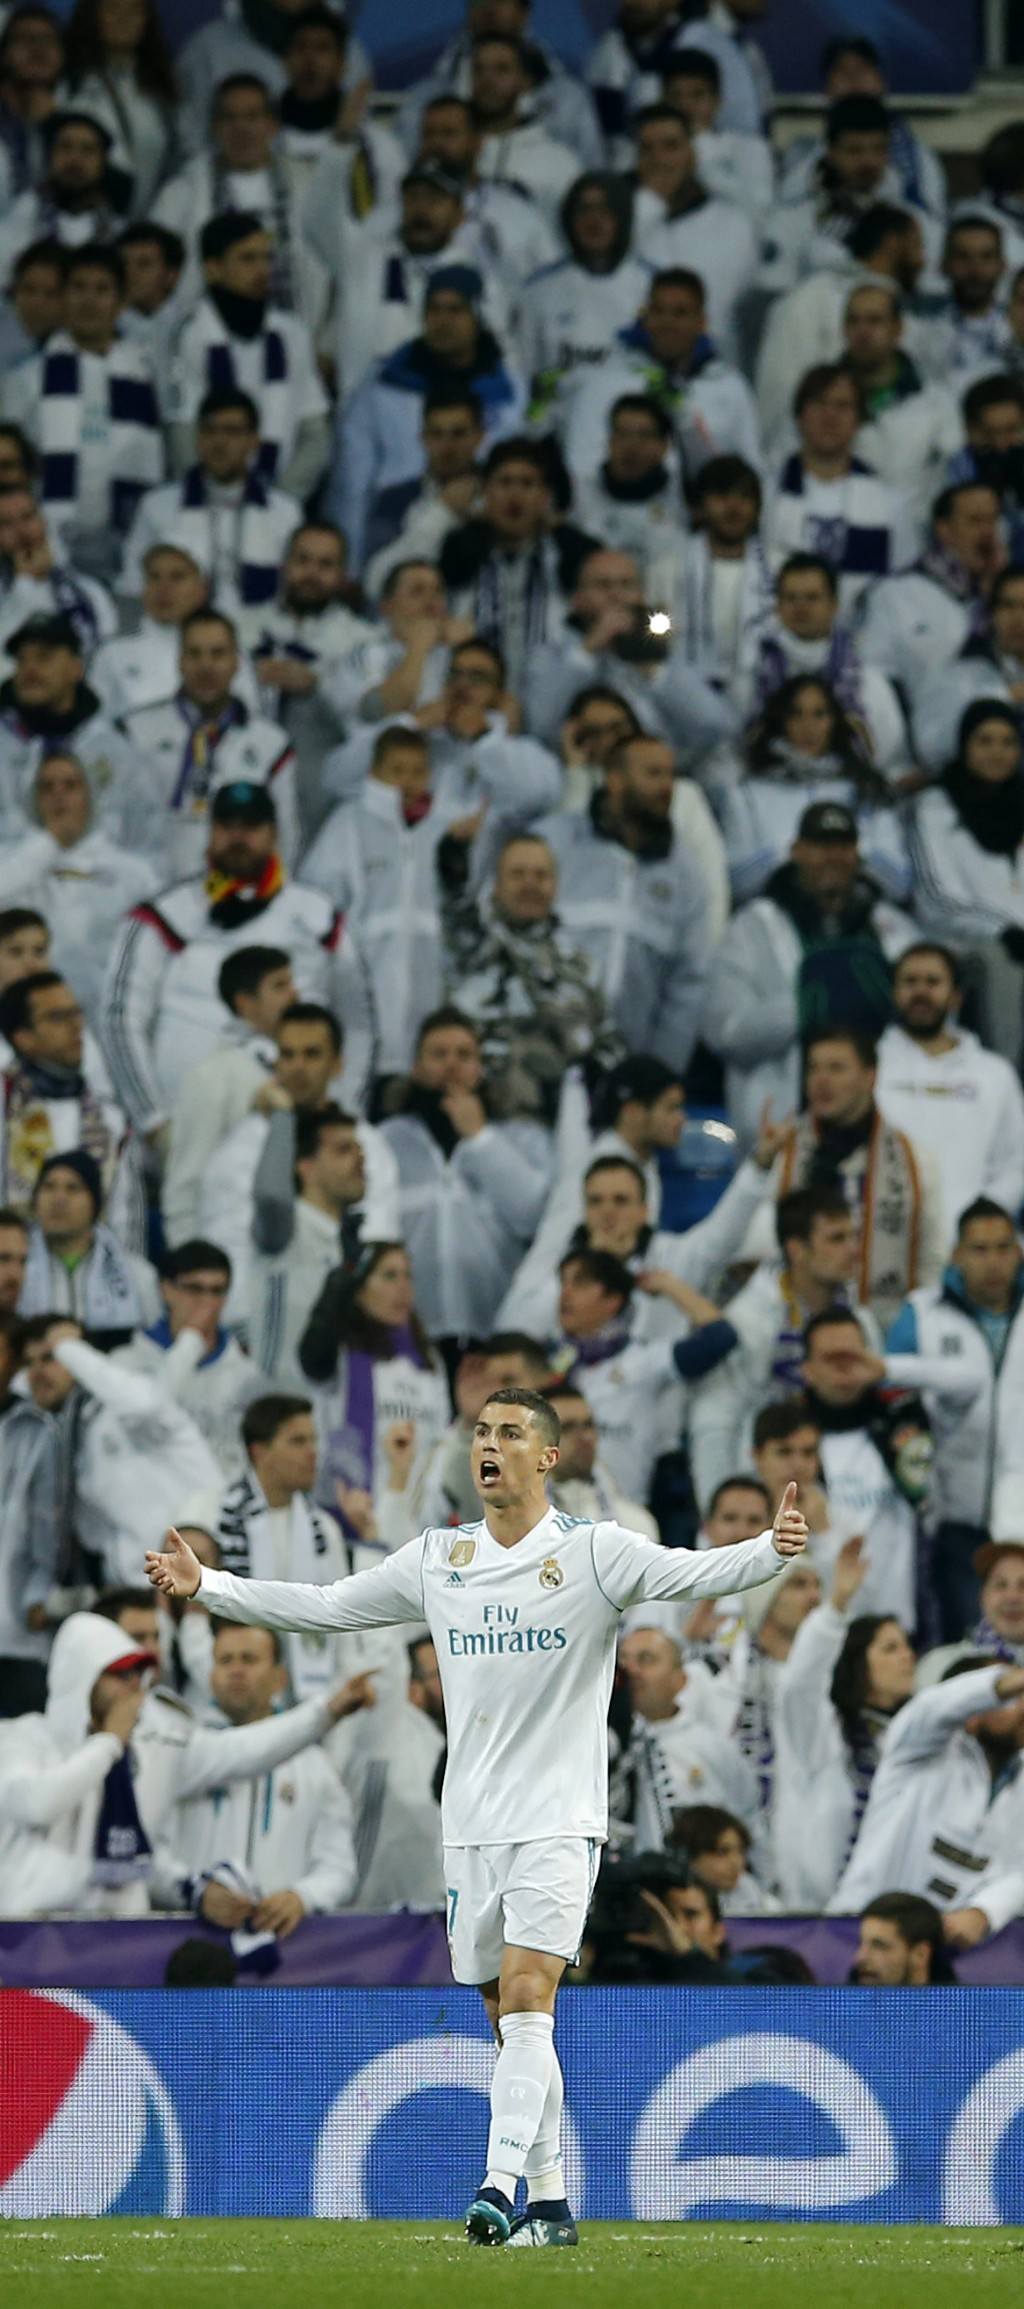 Real Madrid's Cristiano Ronaldo reacts in front of supporters during the Champions League Group H soccer match between Real Madrid and Borussia Dortmu